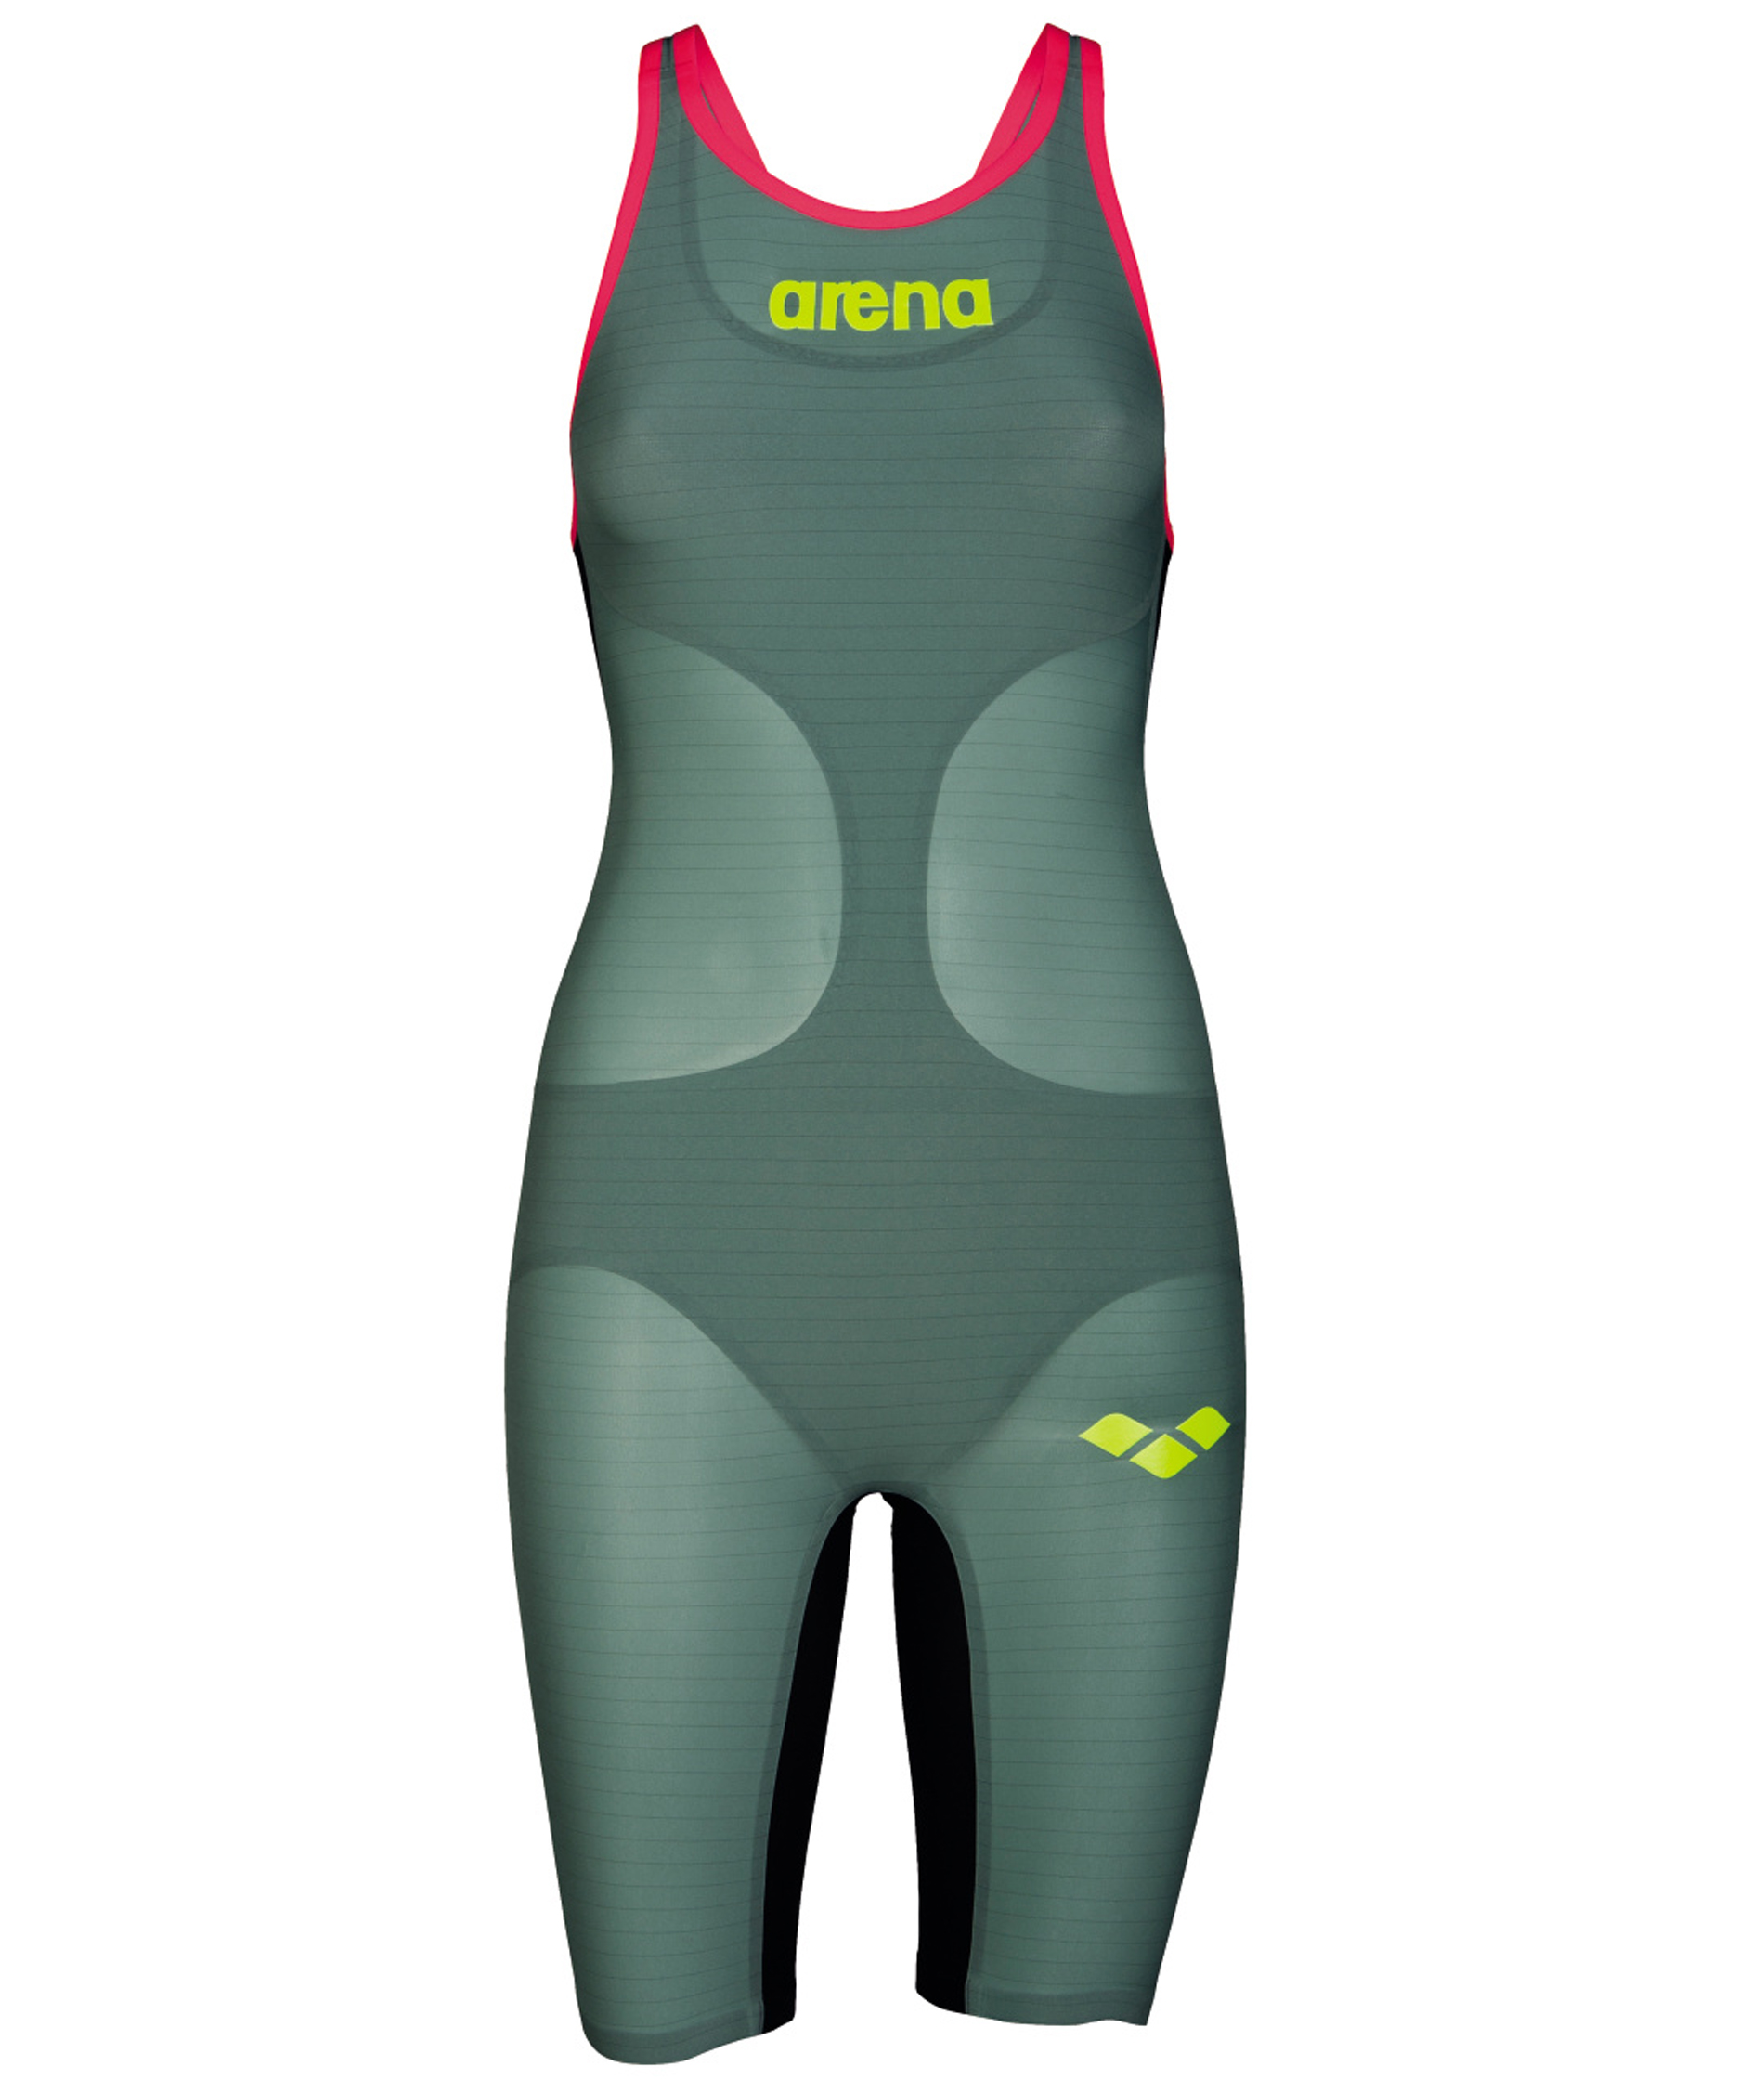 Arena Womens Carbon-Air Powerskin Open Back Suit – Dark Green -Red